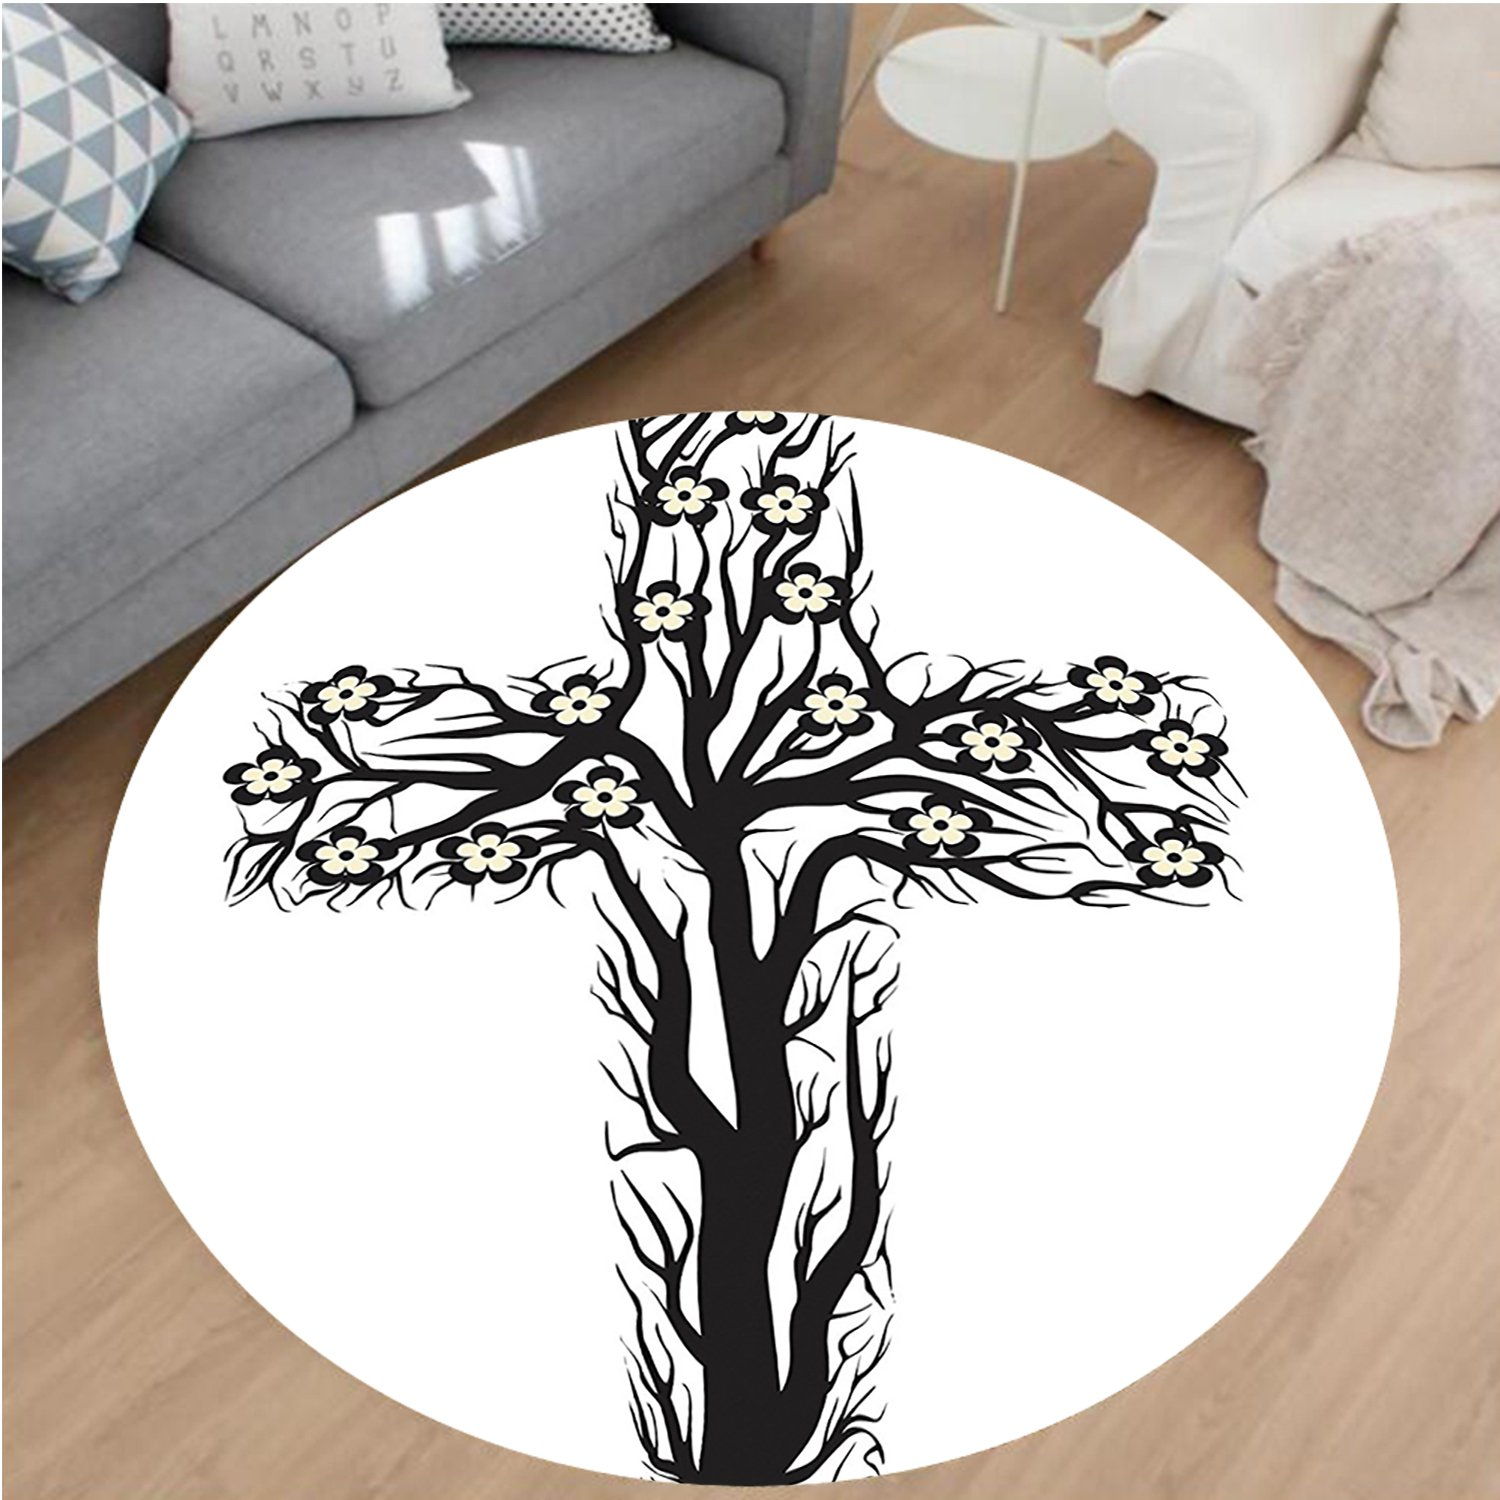 Nalahome Modern Flannel Microfiber Non-Slip Machine Washable Round Area Rug-l Christian Cross in Tree Shape Christ Religion Prayer Blessed Miracle Symbol Black White area rugs Home Decor-Round 75''